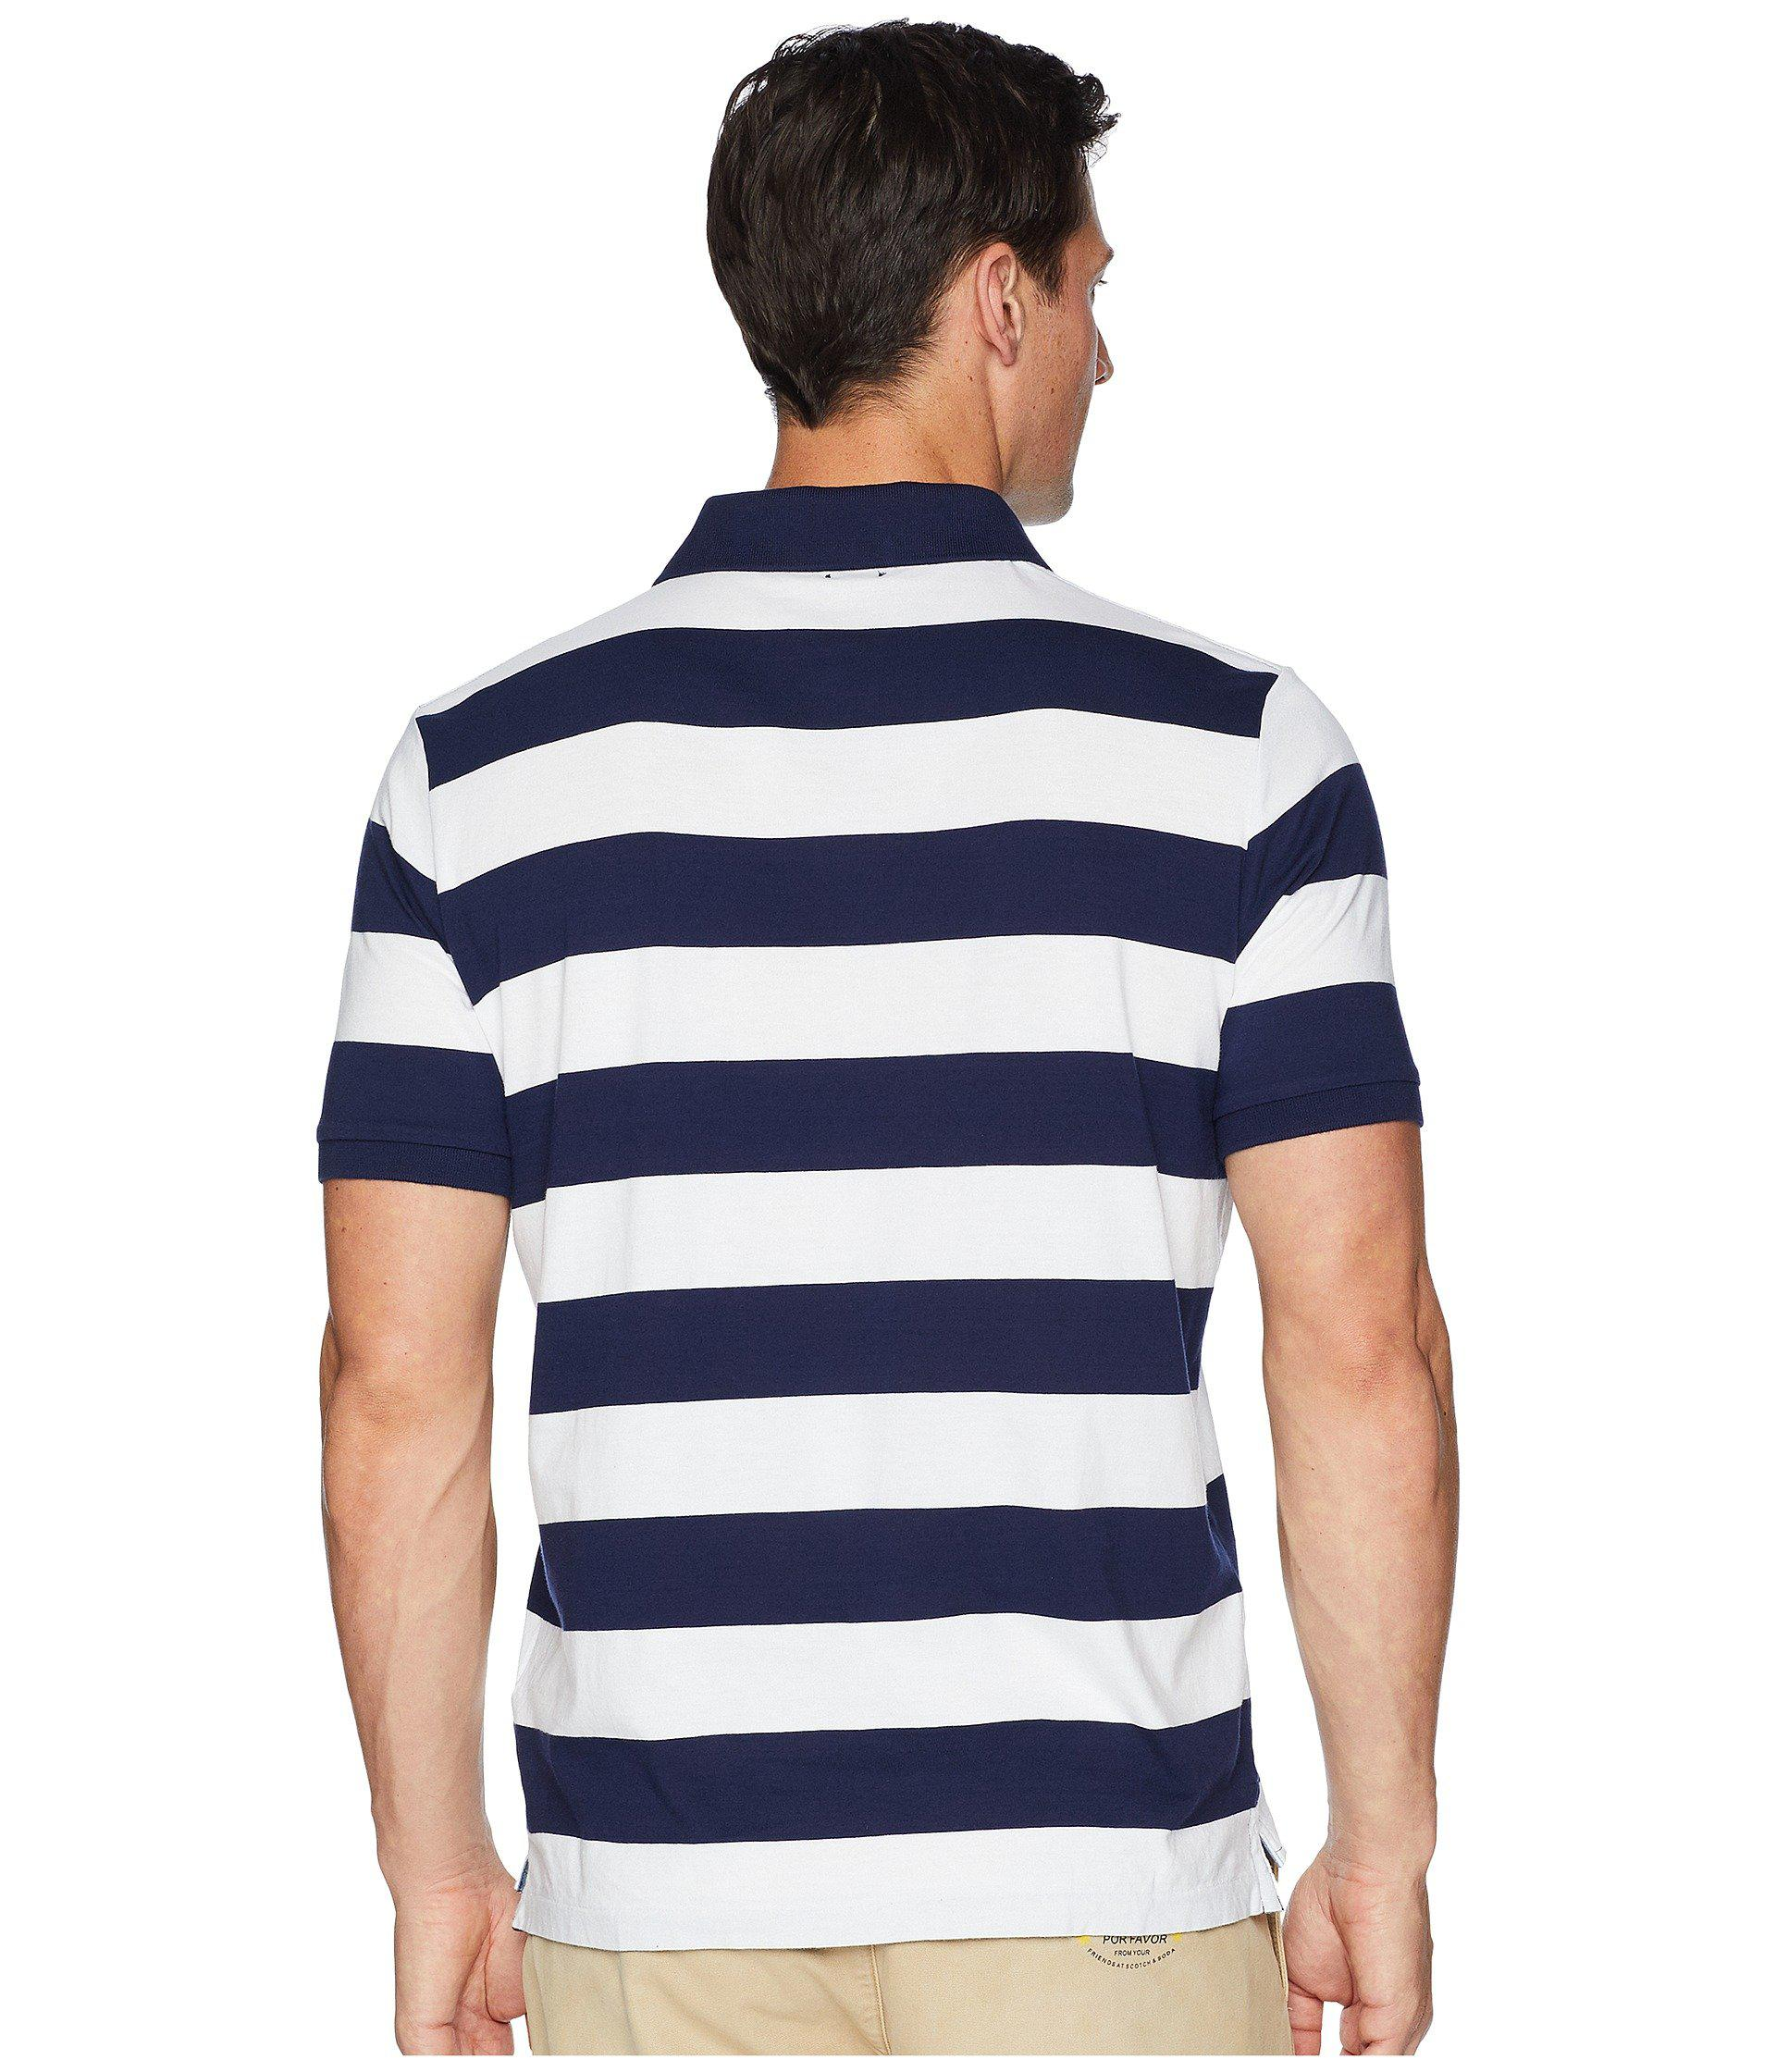 4f1f5b36 Polo Ralph Lauren Classic Fit Yarn-dyed Striped Knit Polo in Blue ...